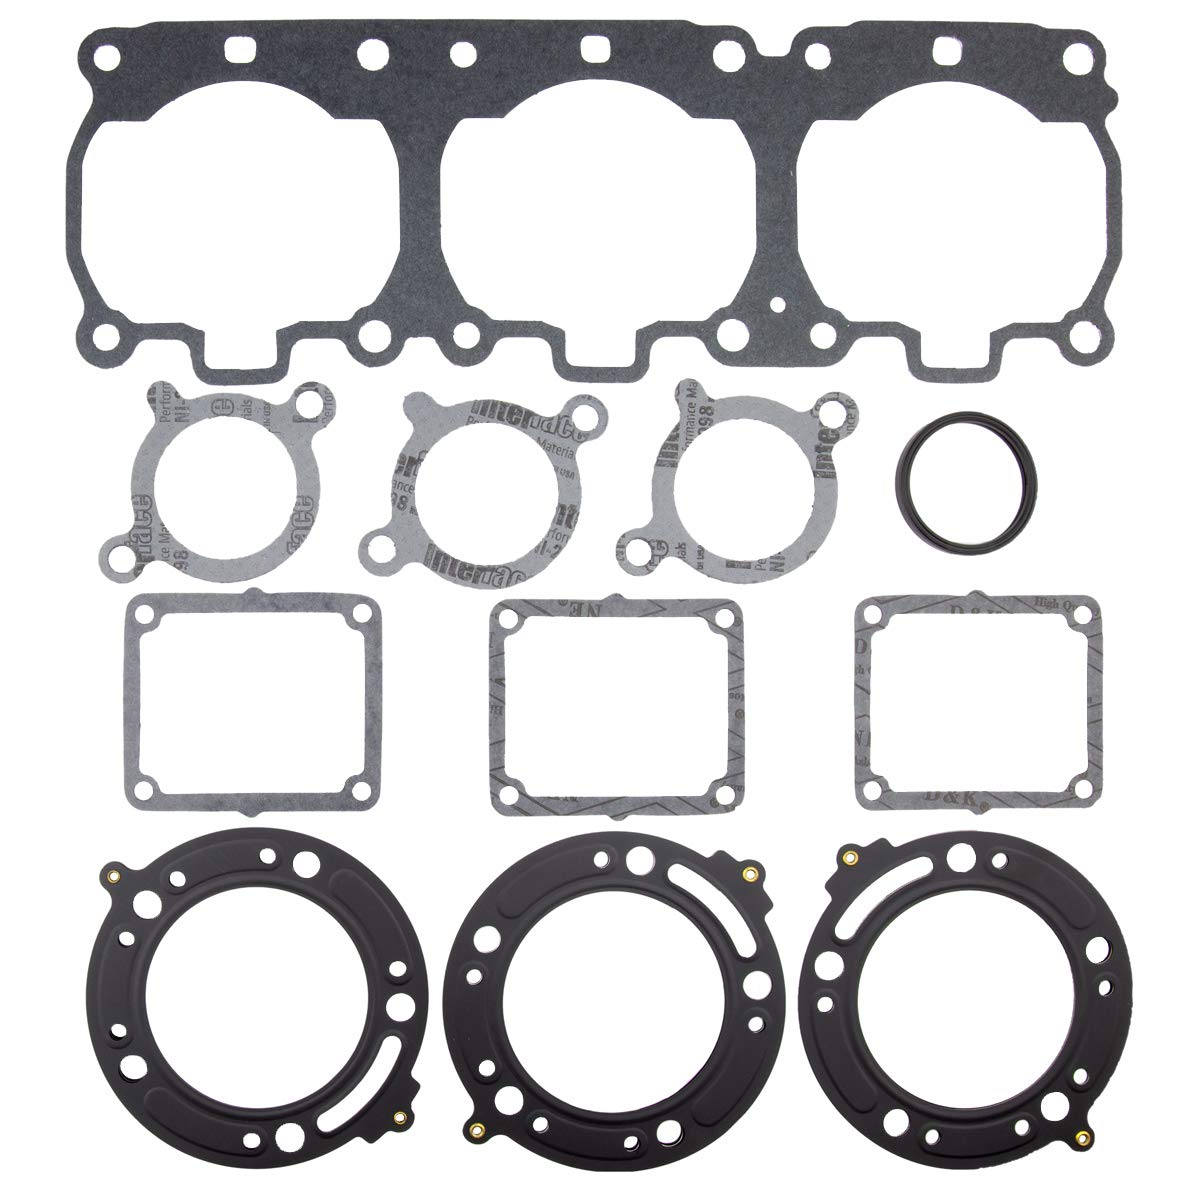 Top End Gasket Set - Yamaha (700 VX/MM/SX/VT 97-03)